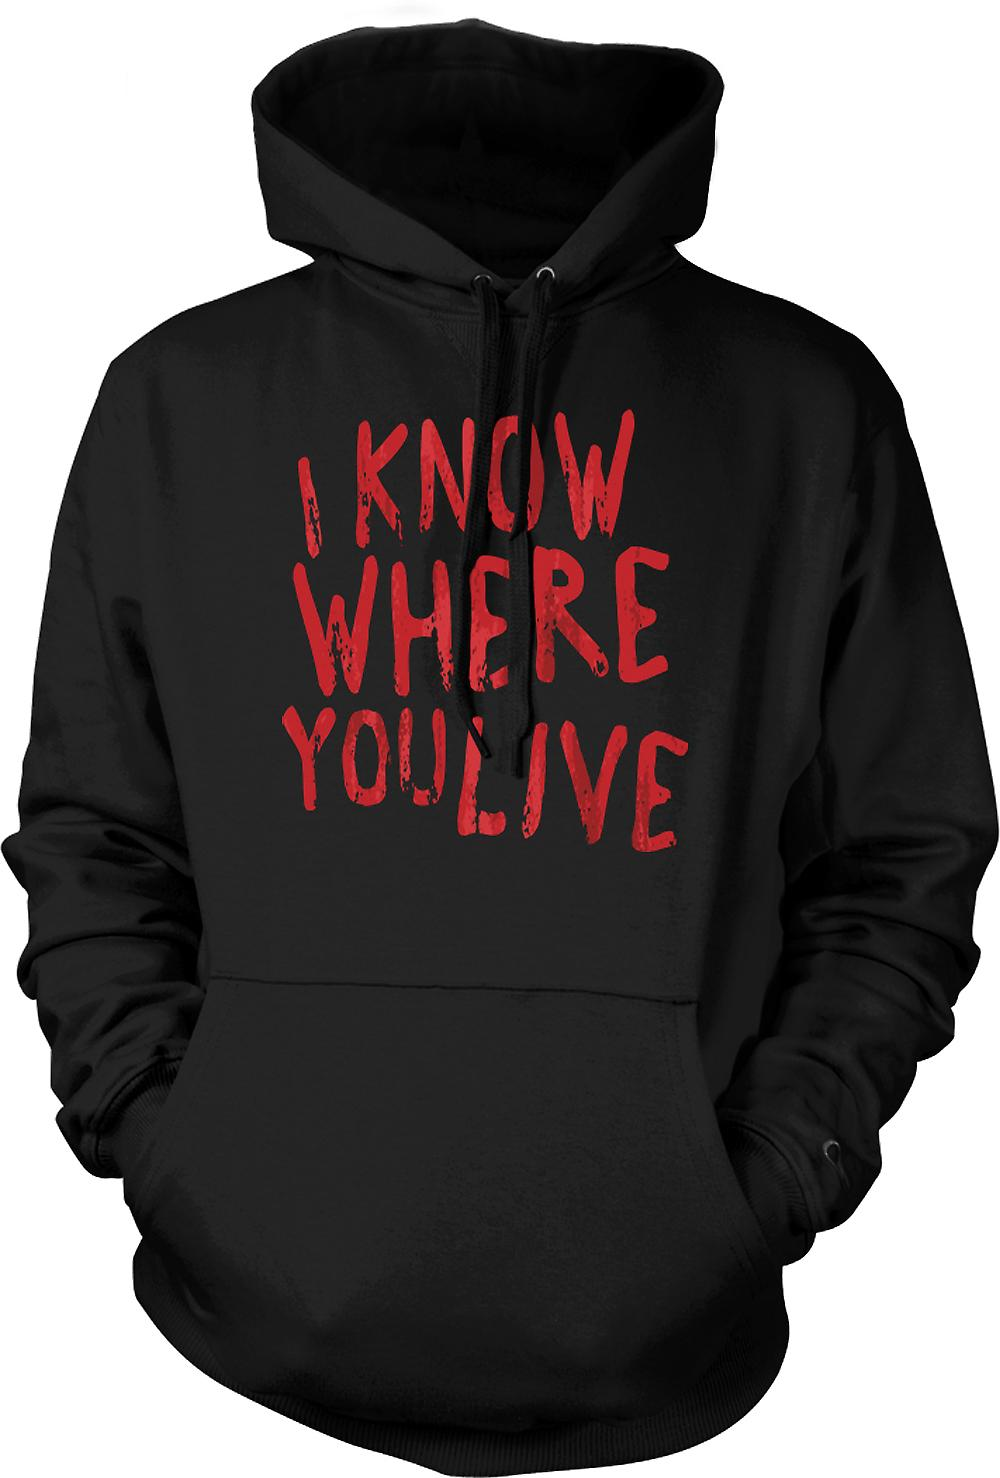 Mens Hoodie - I Know Where You Live - Funny Stalker